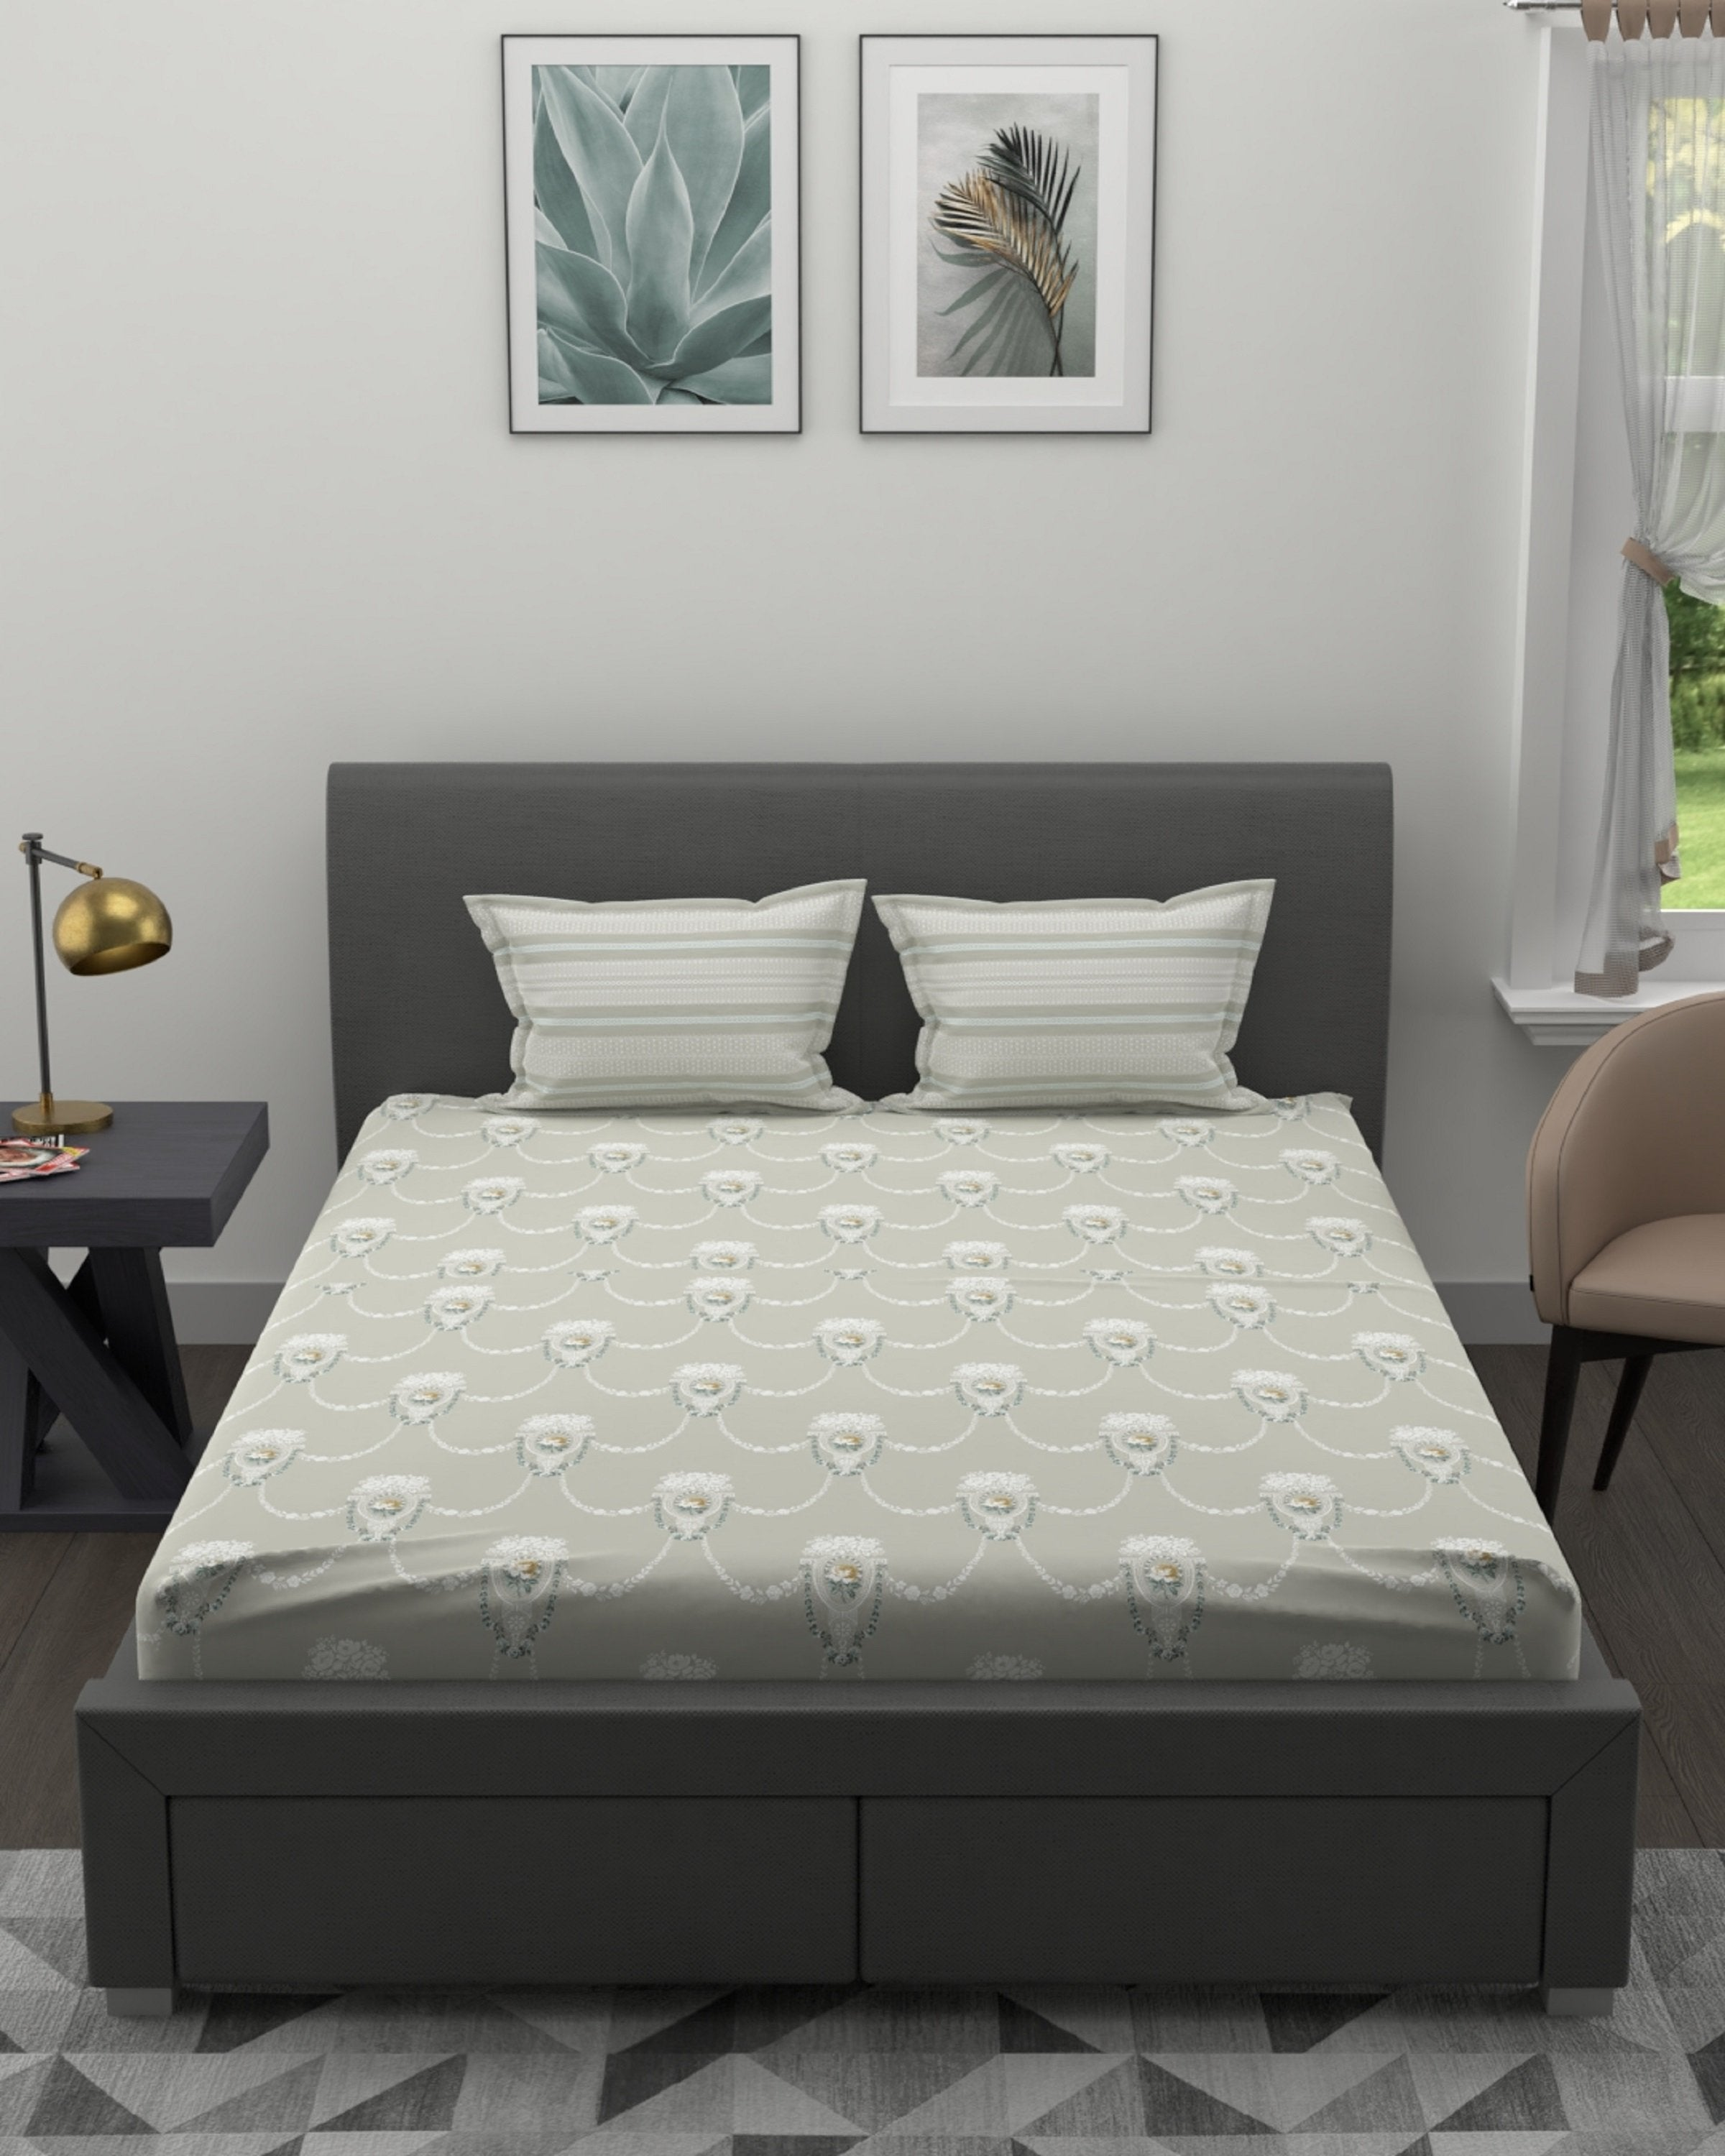 CELESTYNA EXCLUSIVE GREY BED SET-4 PCS- ANGIE HOMES ANGIE KRIPALANI DESIGN- ANGIE HOMES - ANGIES INDIA